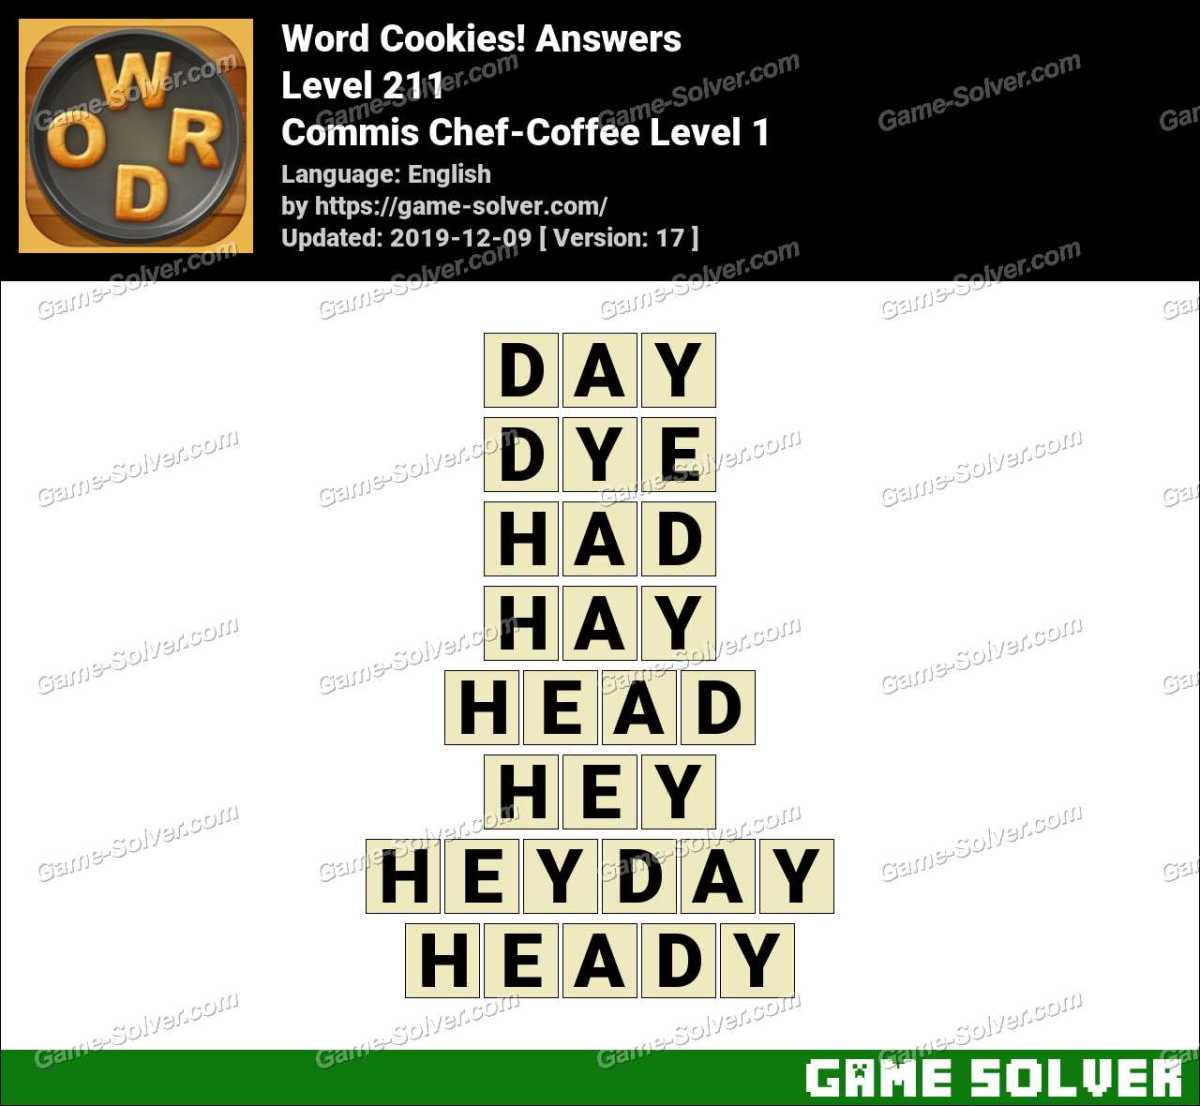 Word Cookies Commis Chef-Coffee Level 1 Answers